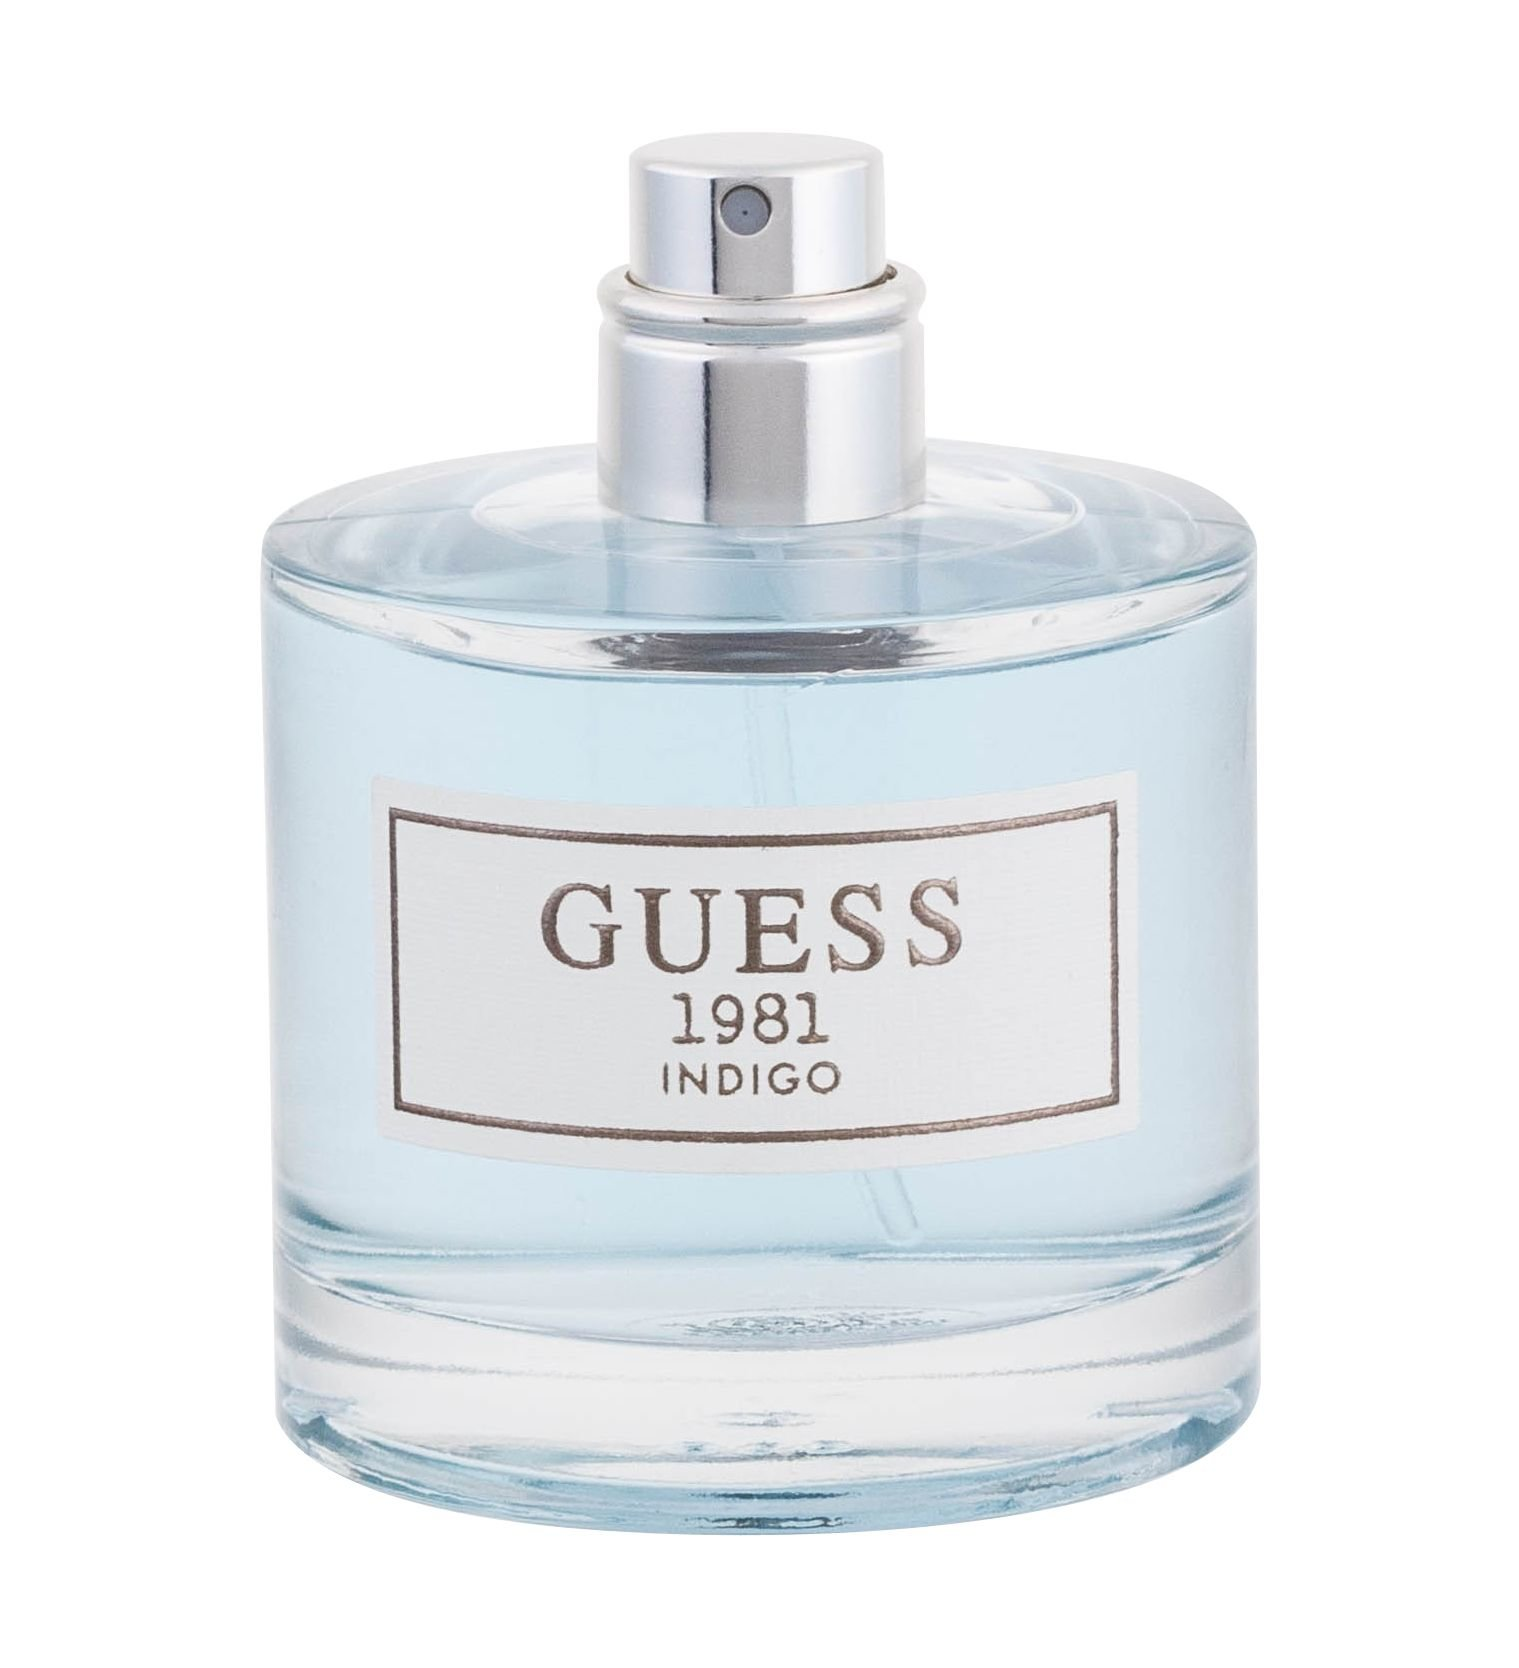 GUESS Guess 1981 Indigo For Women Eau de Toilette 50ml